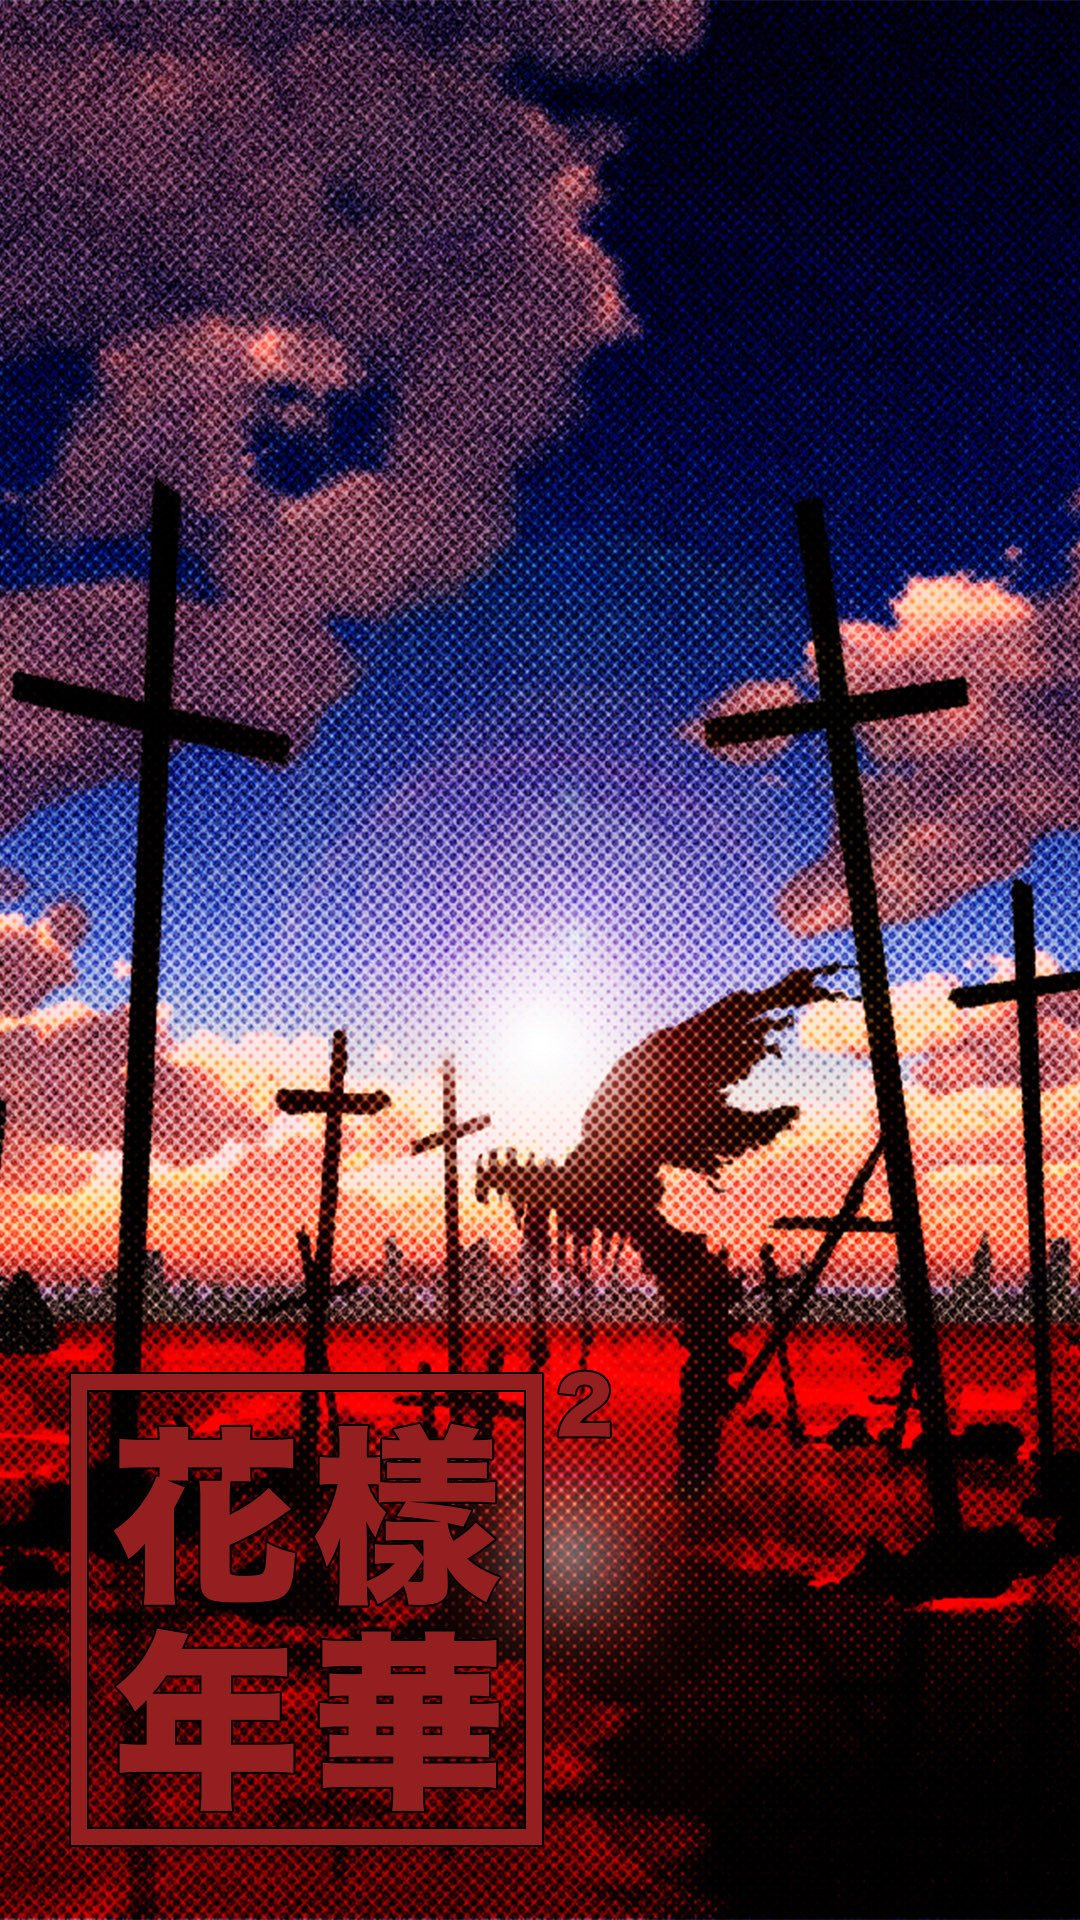 Neon Genesis Evangelion Wallpaper Phone 3D Android Wallpaper 1080x1920